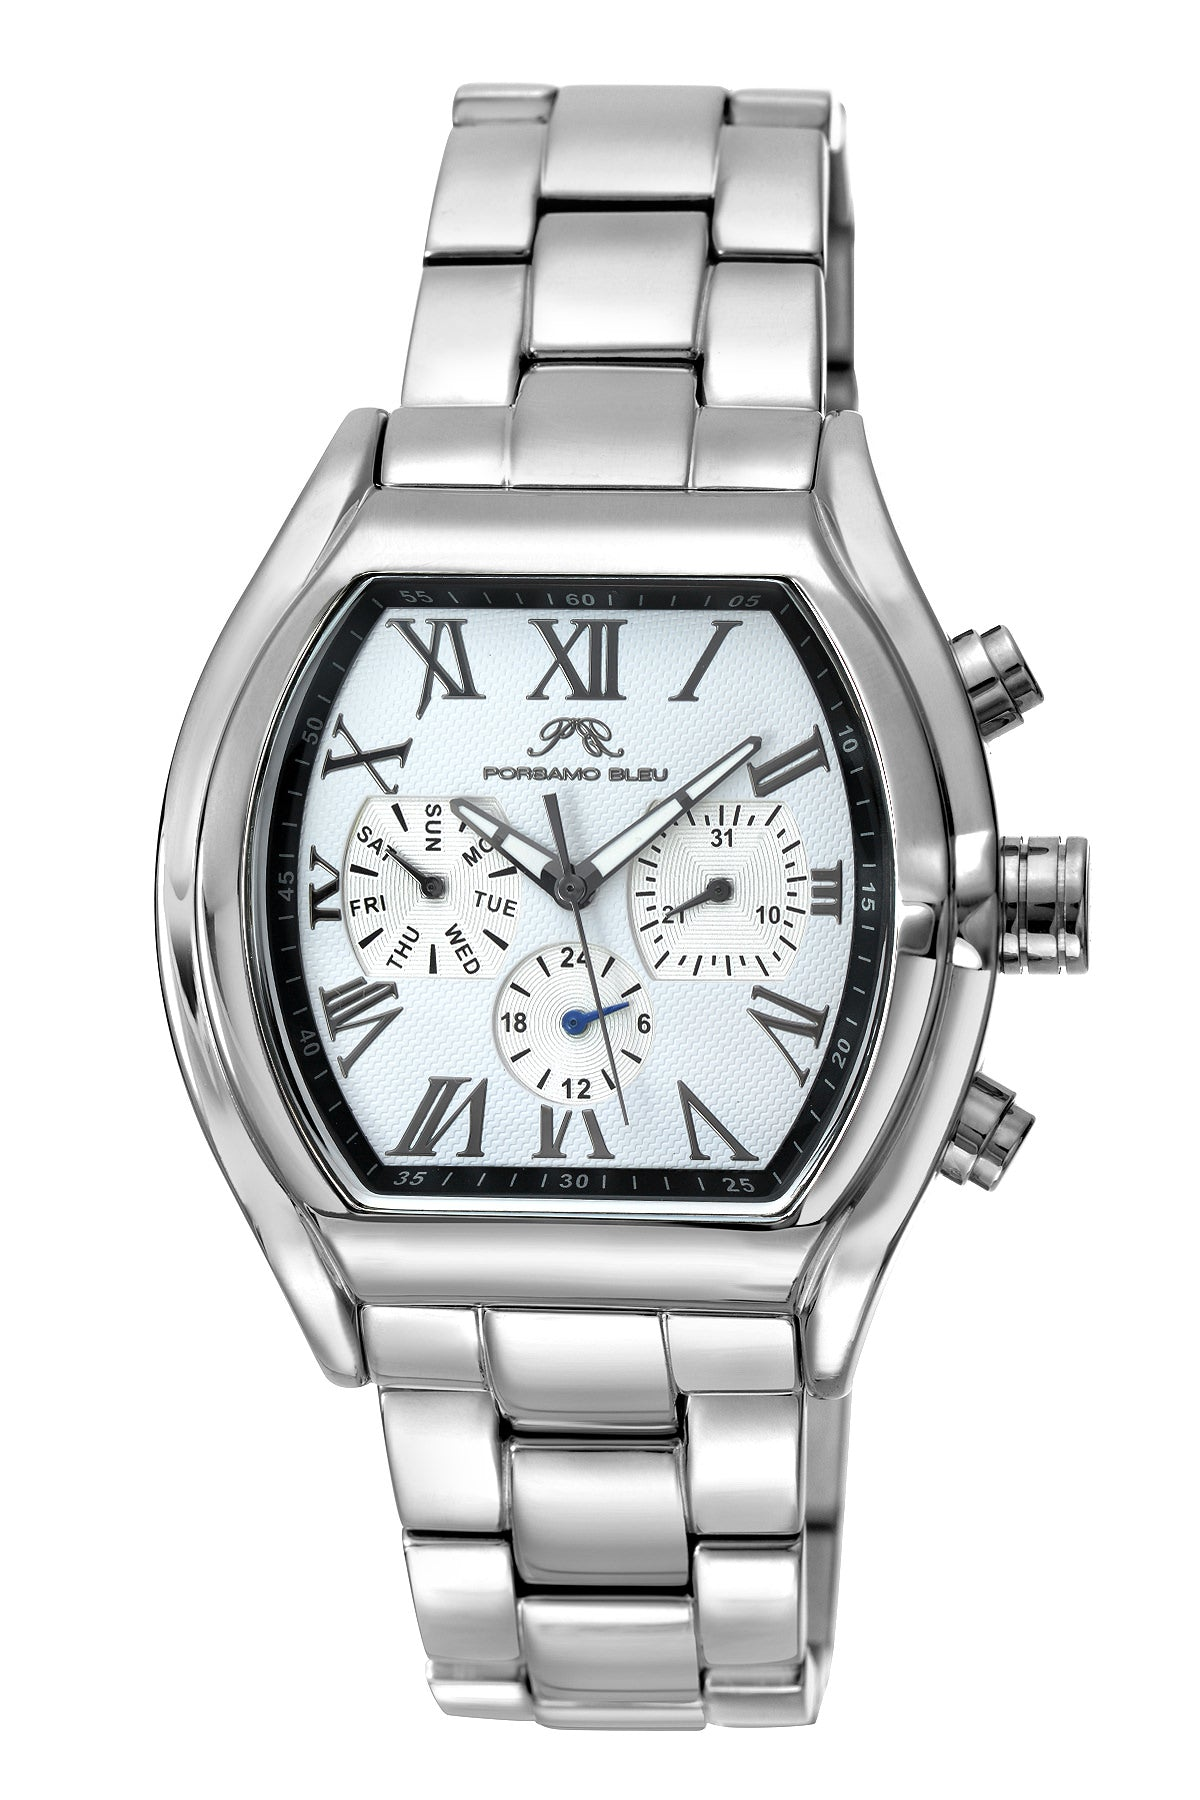 Porsamo Bleu Bruno luxury men's stainless steel watch, silver, white 201ABRS